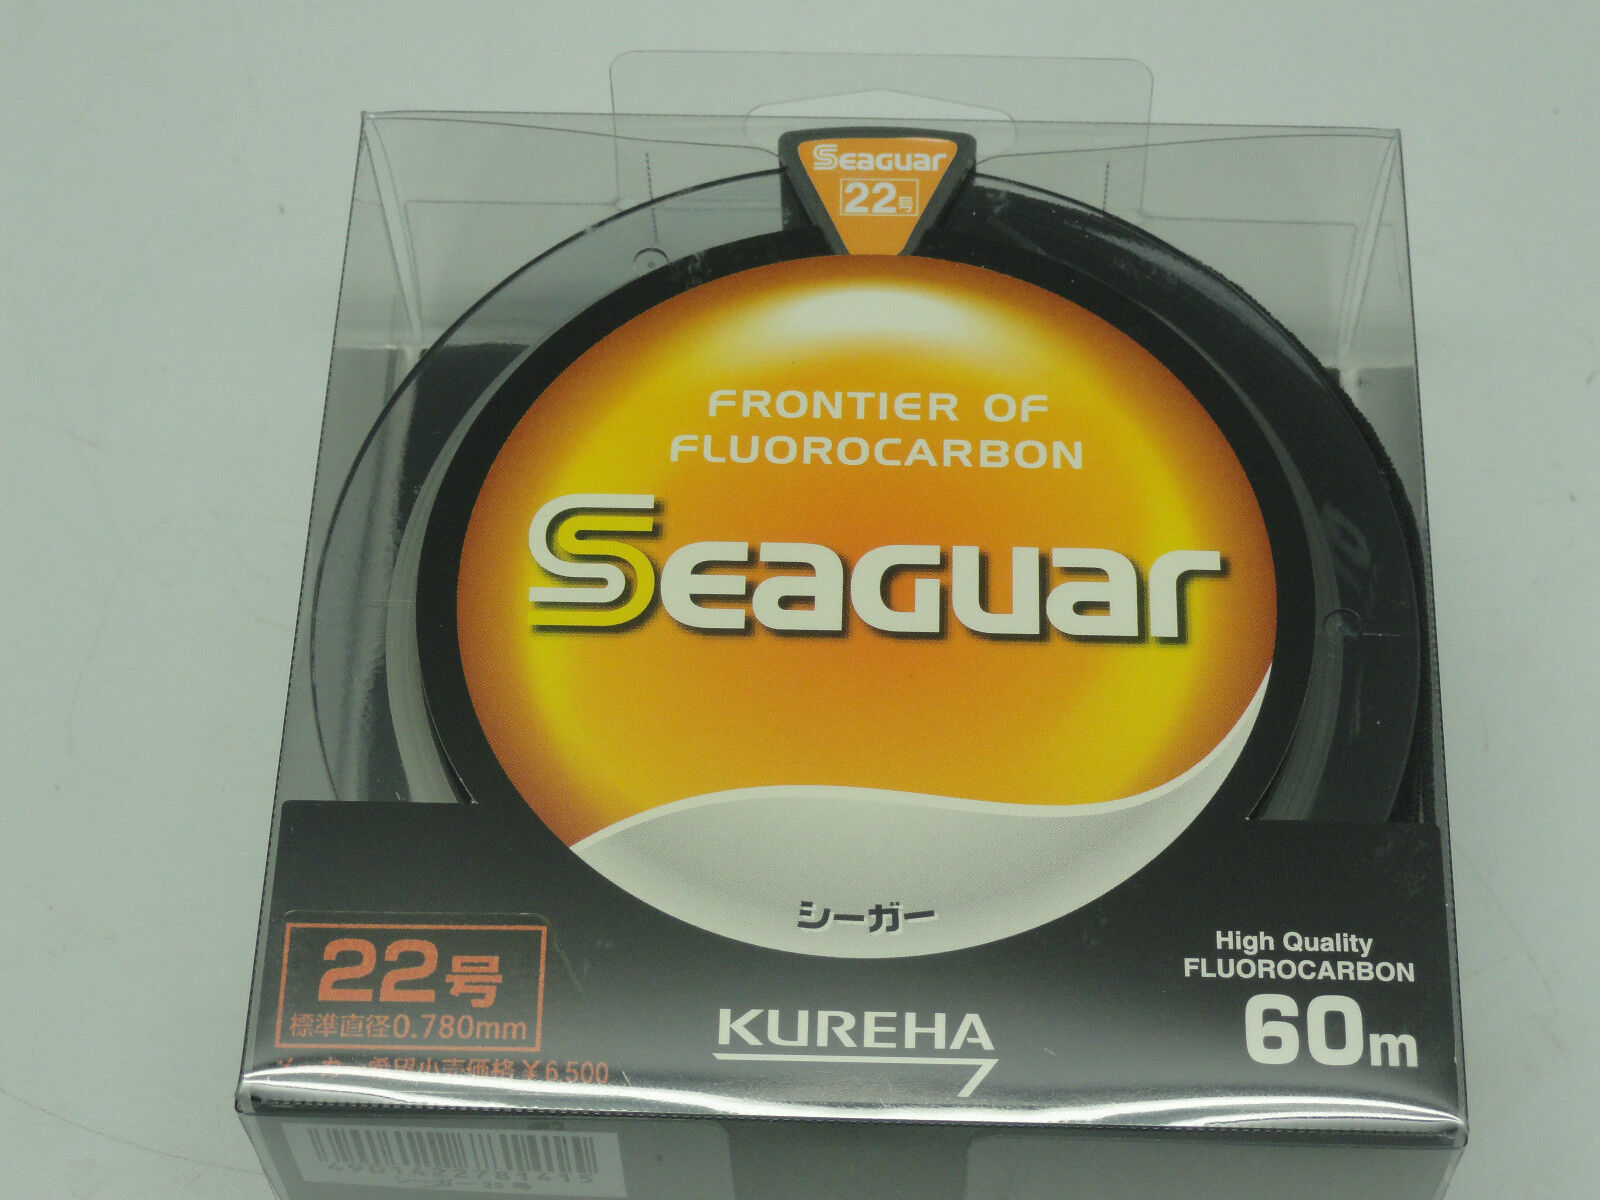 SEAGUAR FRONTIER BIG GAME FLUgoldCARBON LEADER Japan U.S 85 lb 60m 66yds